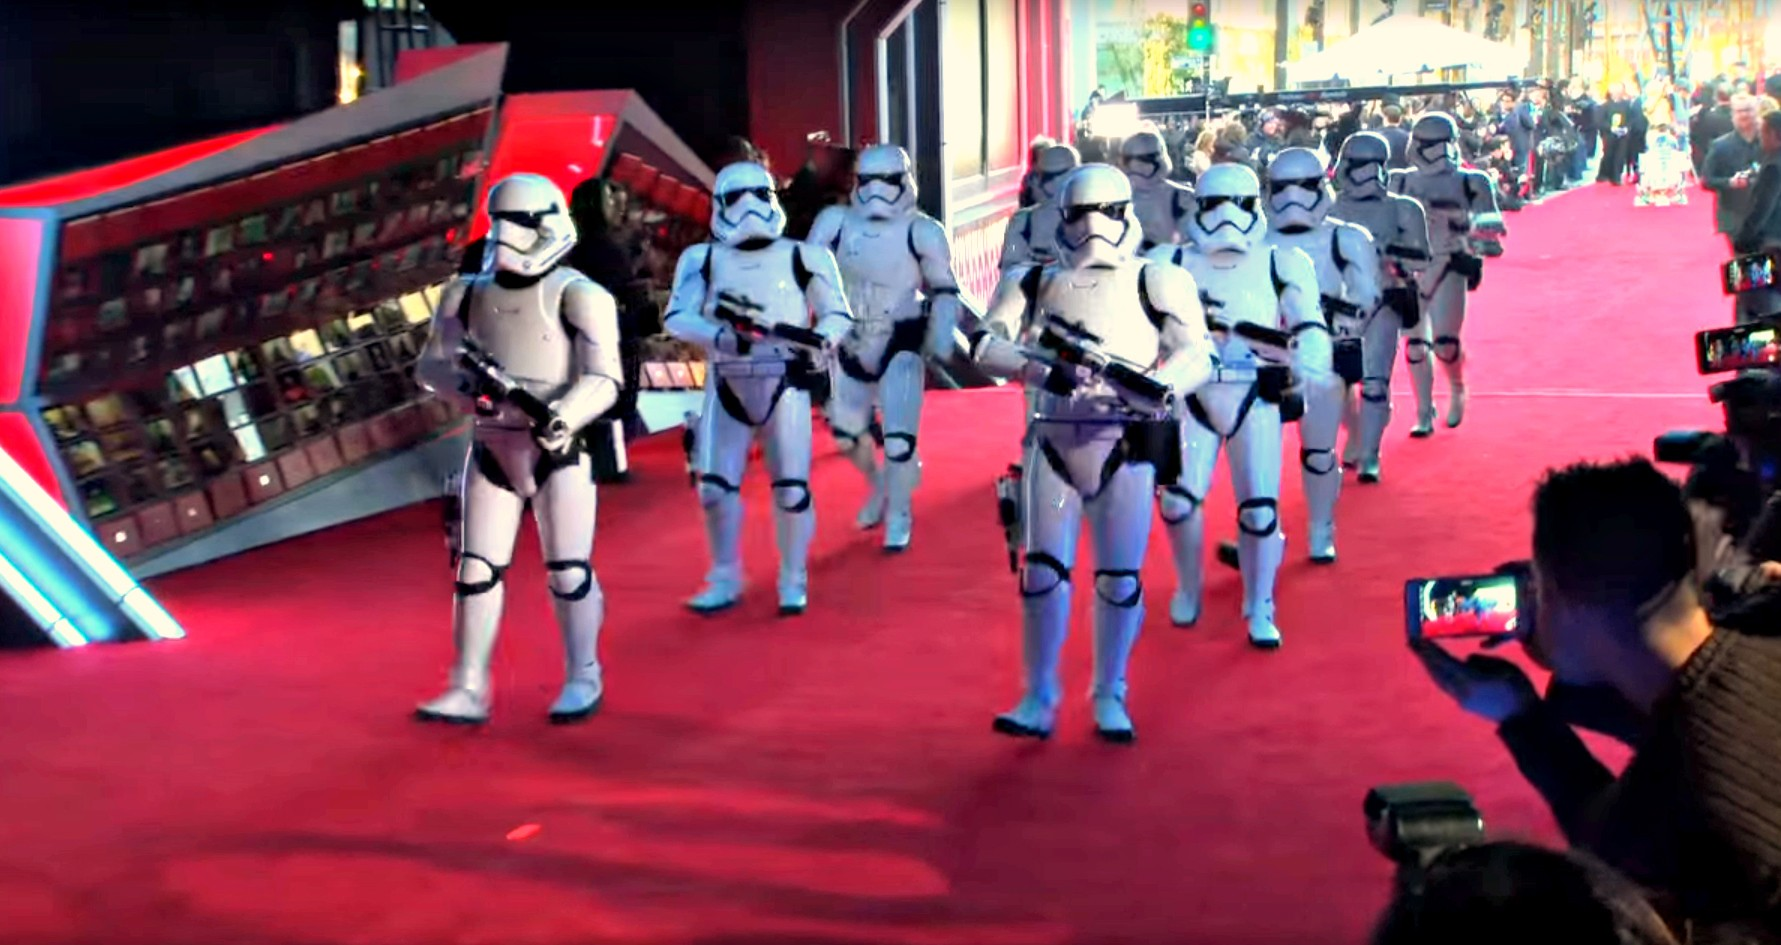 Stormtroopers make their entrance at the Hollywood premiere of The Force Awakens.